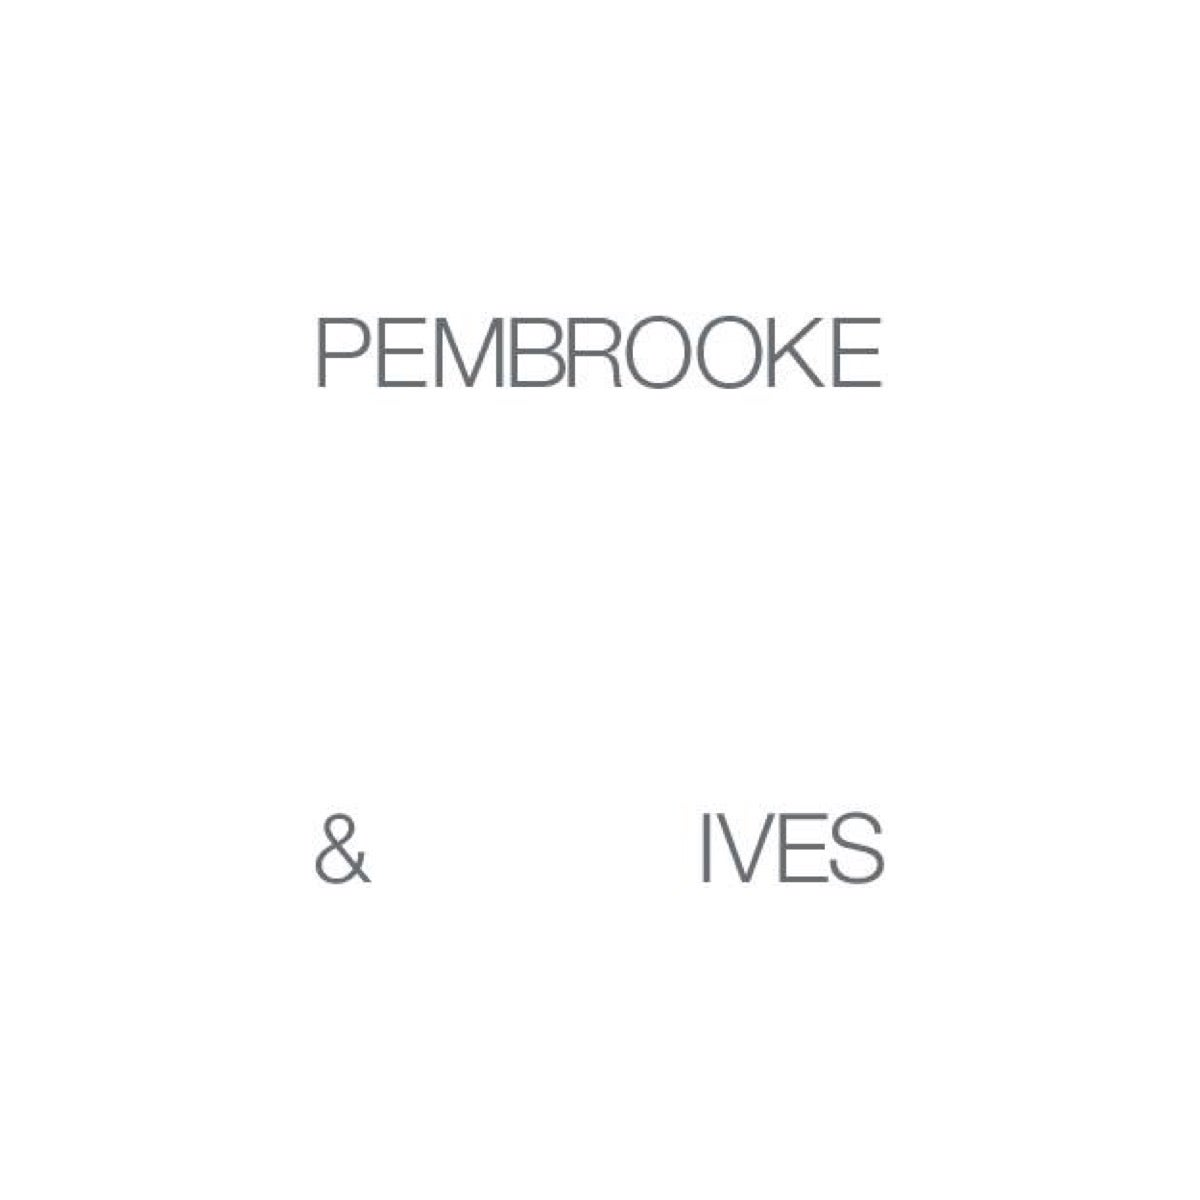 Pembrooke Ives On 1stdibs